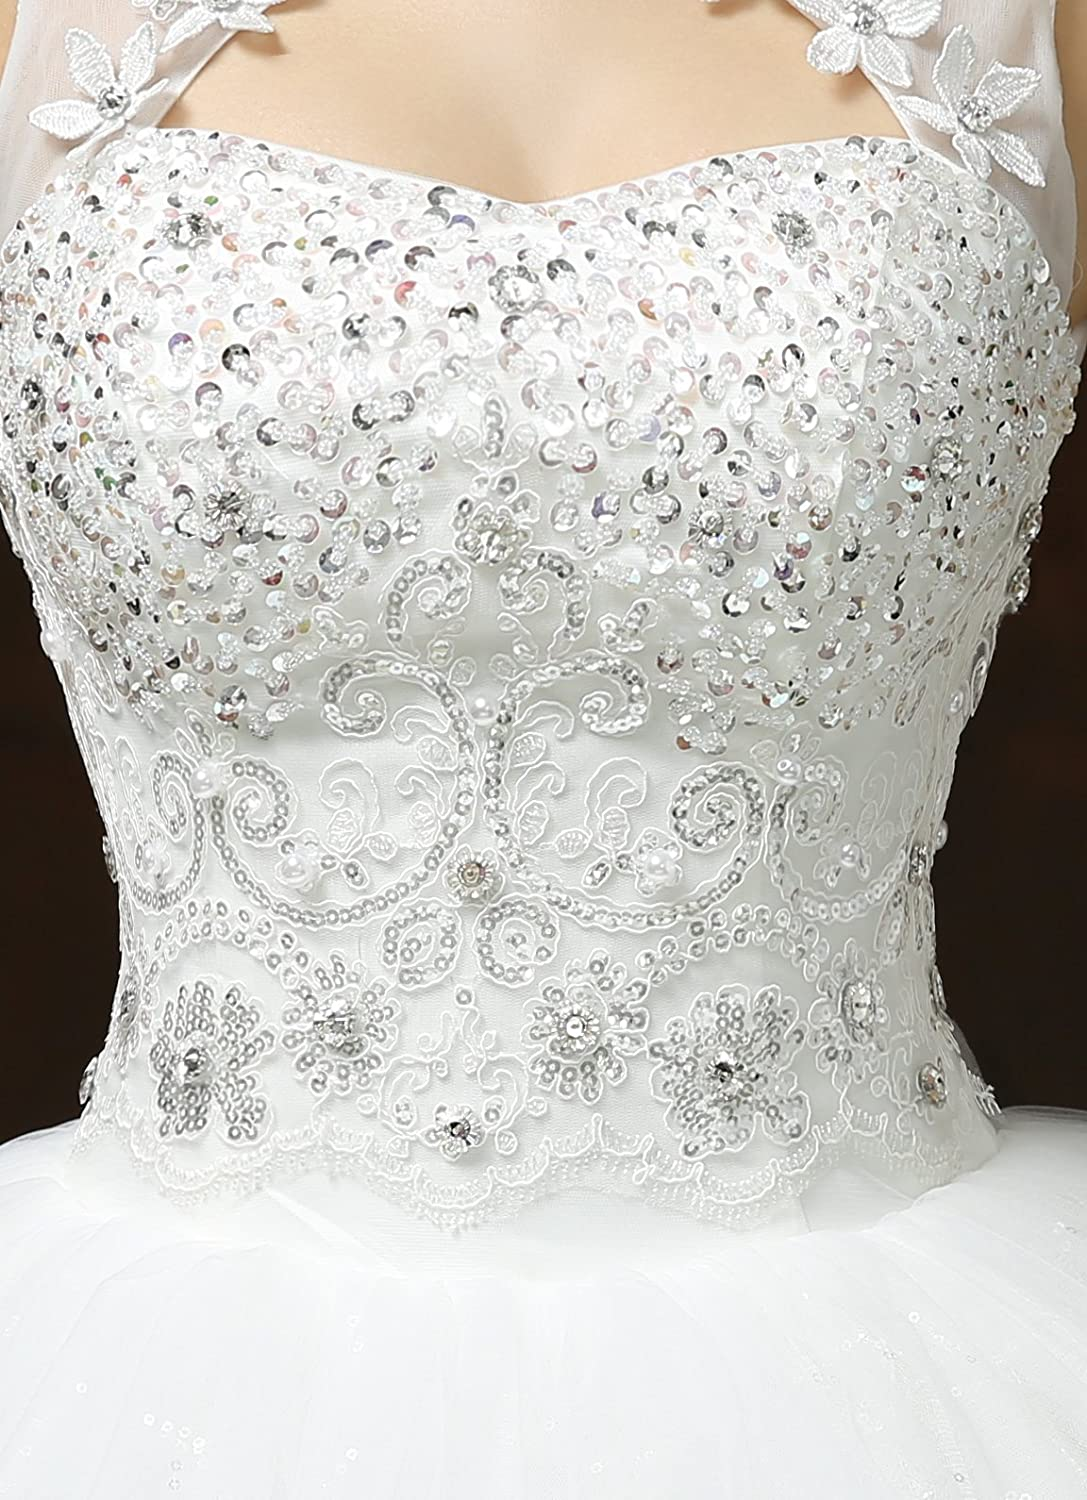 802730b98f4c Clover Bridal 2017 Vintage High Collar Pearl Sequined Wedding Dress for Bride  Ivory Under 100 at Amazon Women's Clothing store: